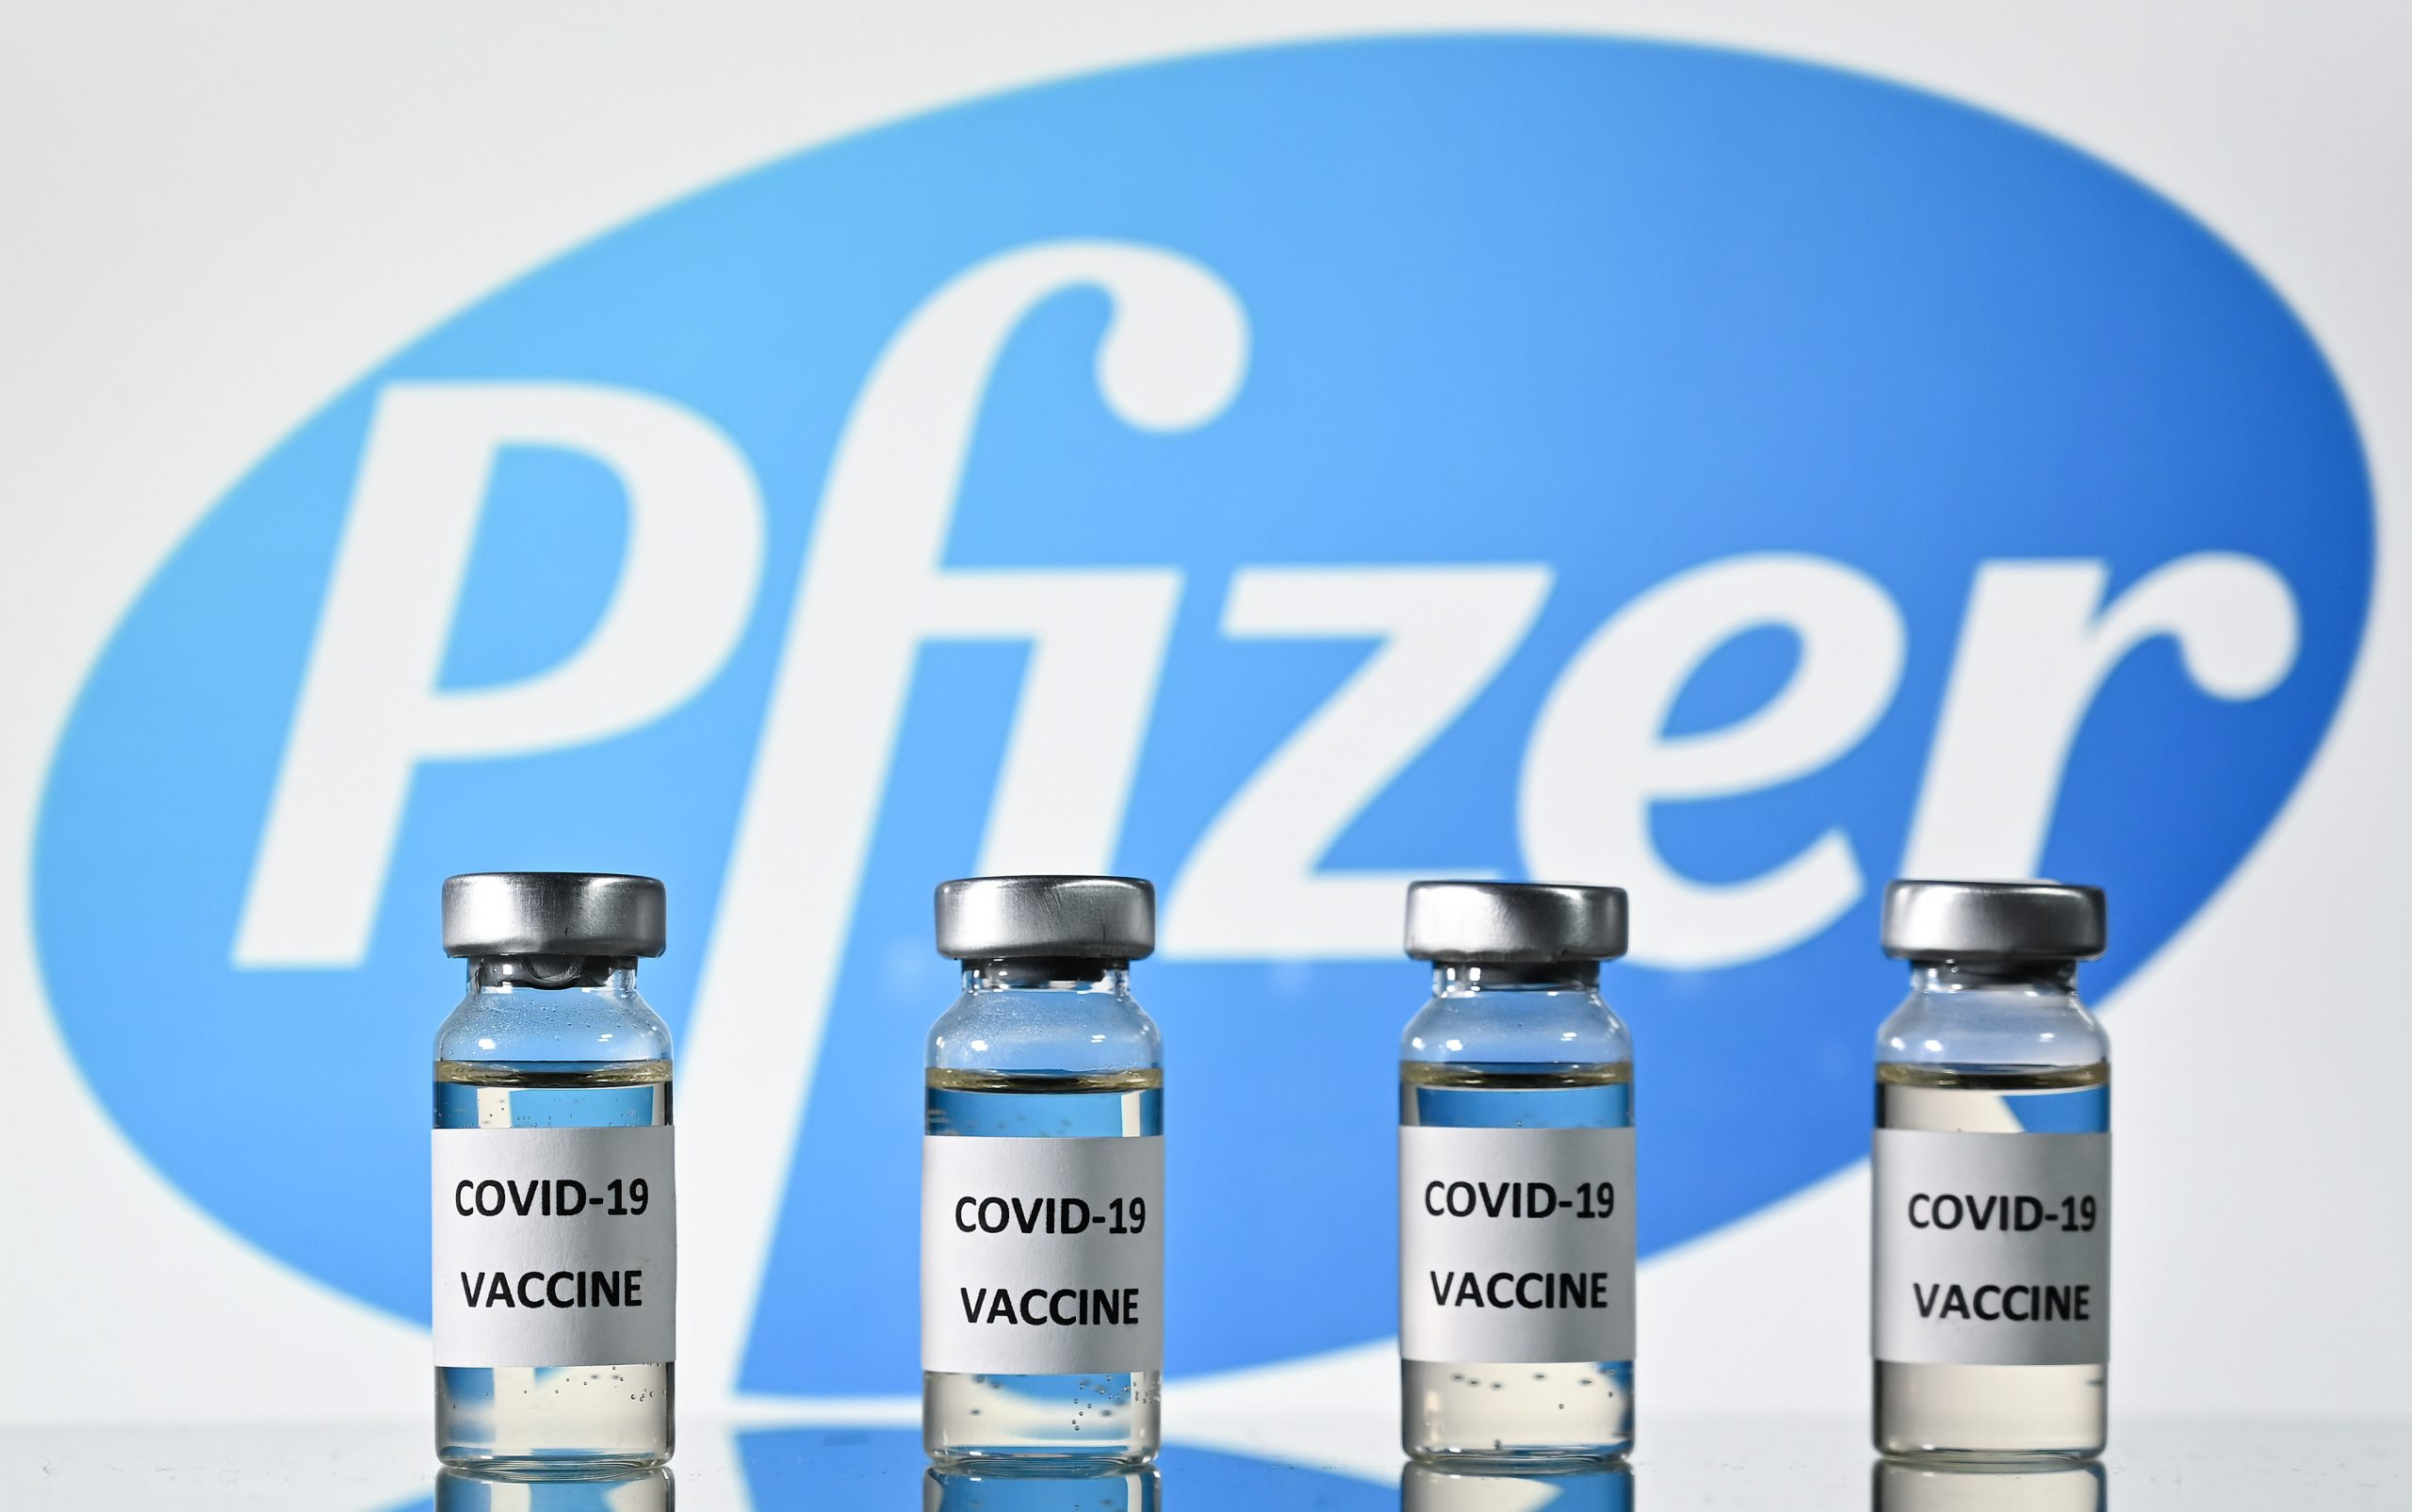 FDA to Extend Emergency Authorization of COVID-19 Vaccine to Adolescents Without Advice From Advisory Committee